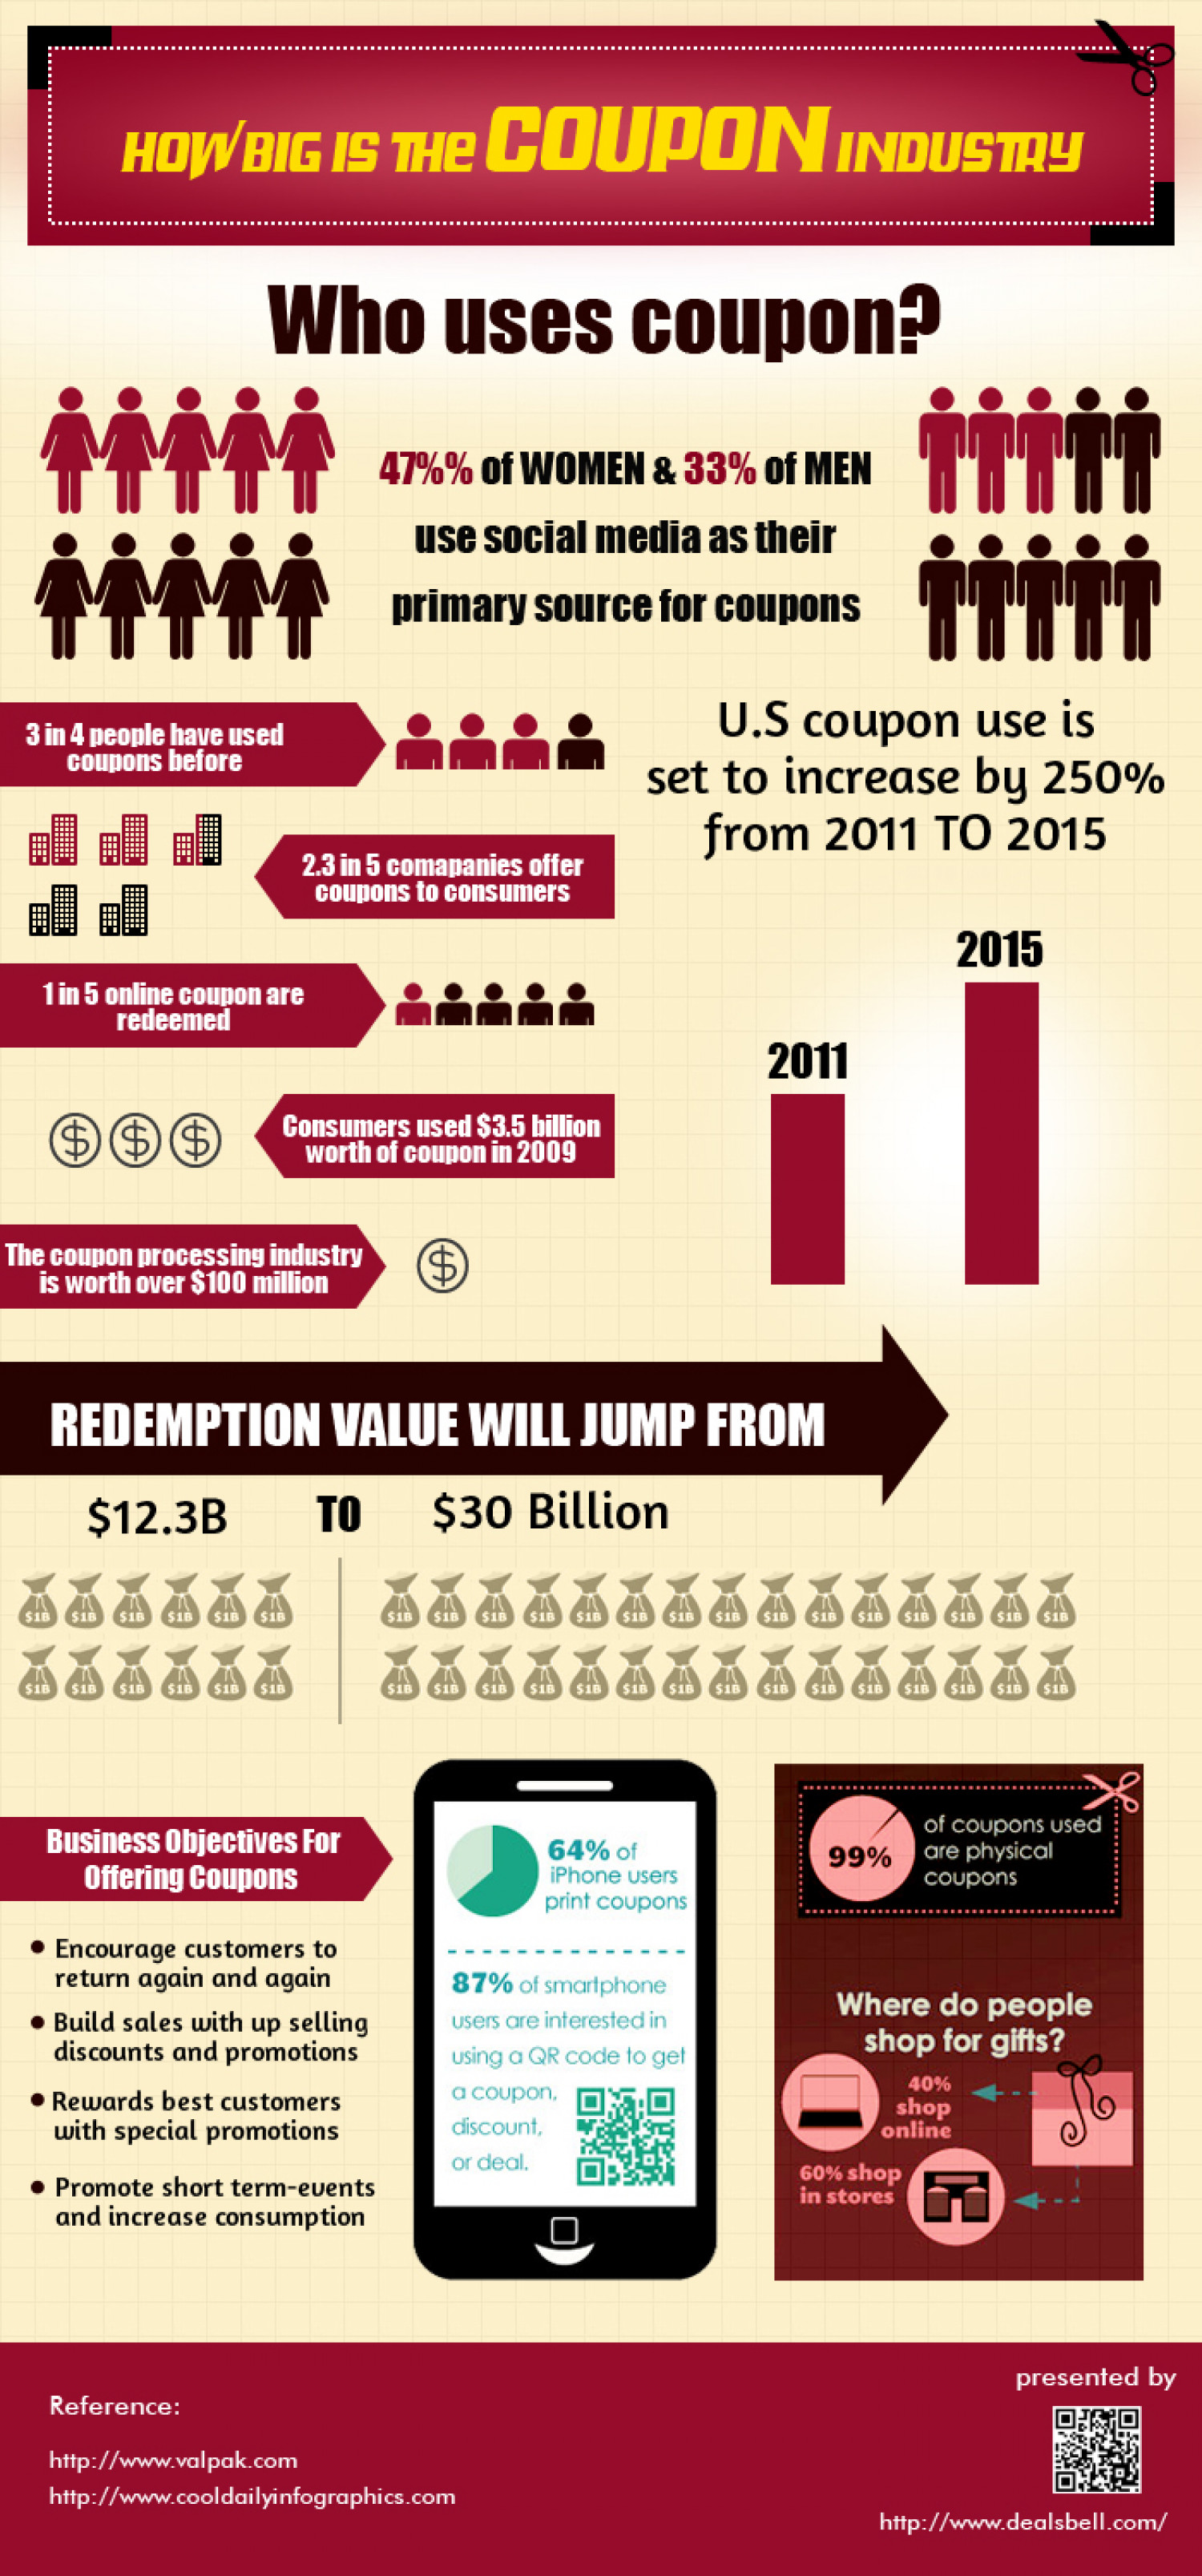 Coupons The New Marketing Strategy for Organizations Infographic